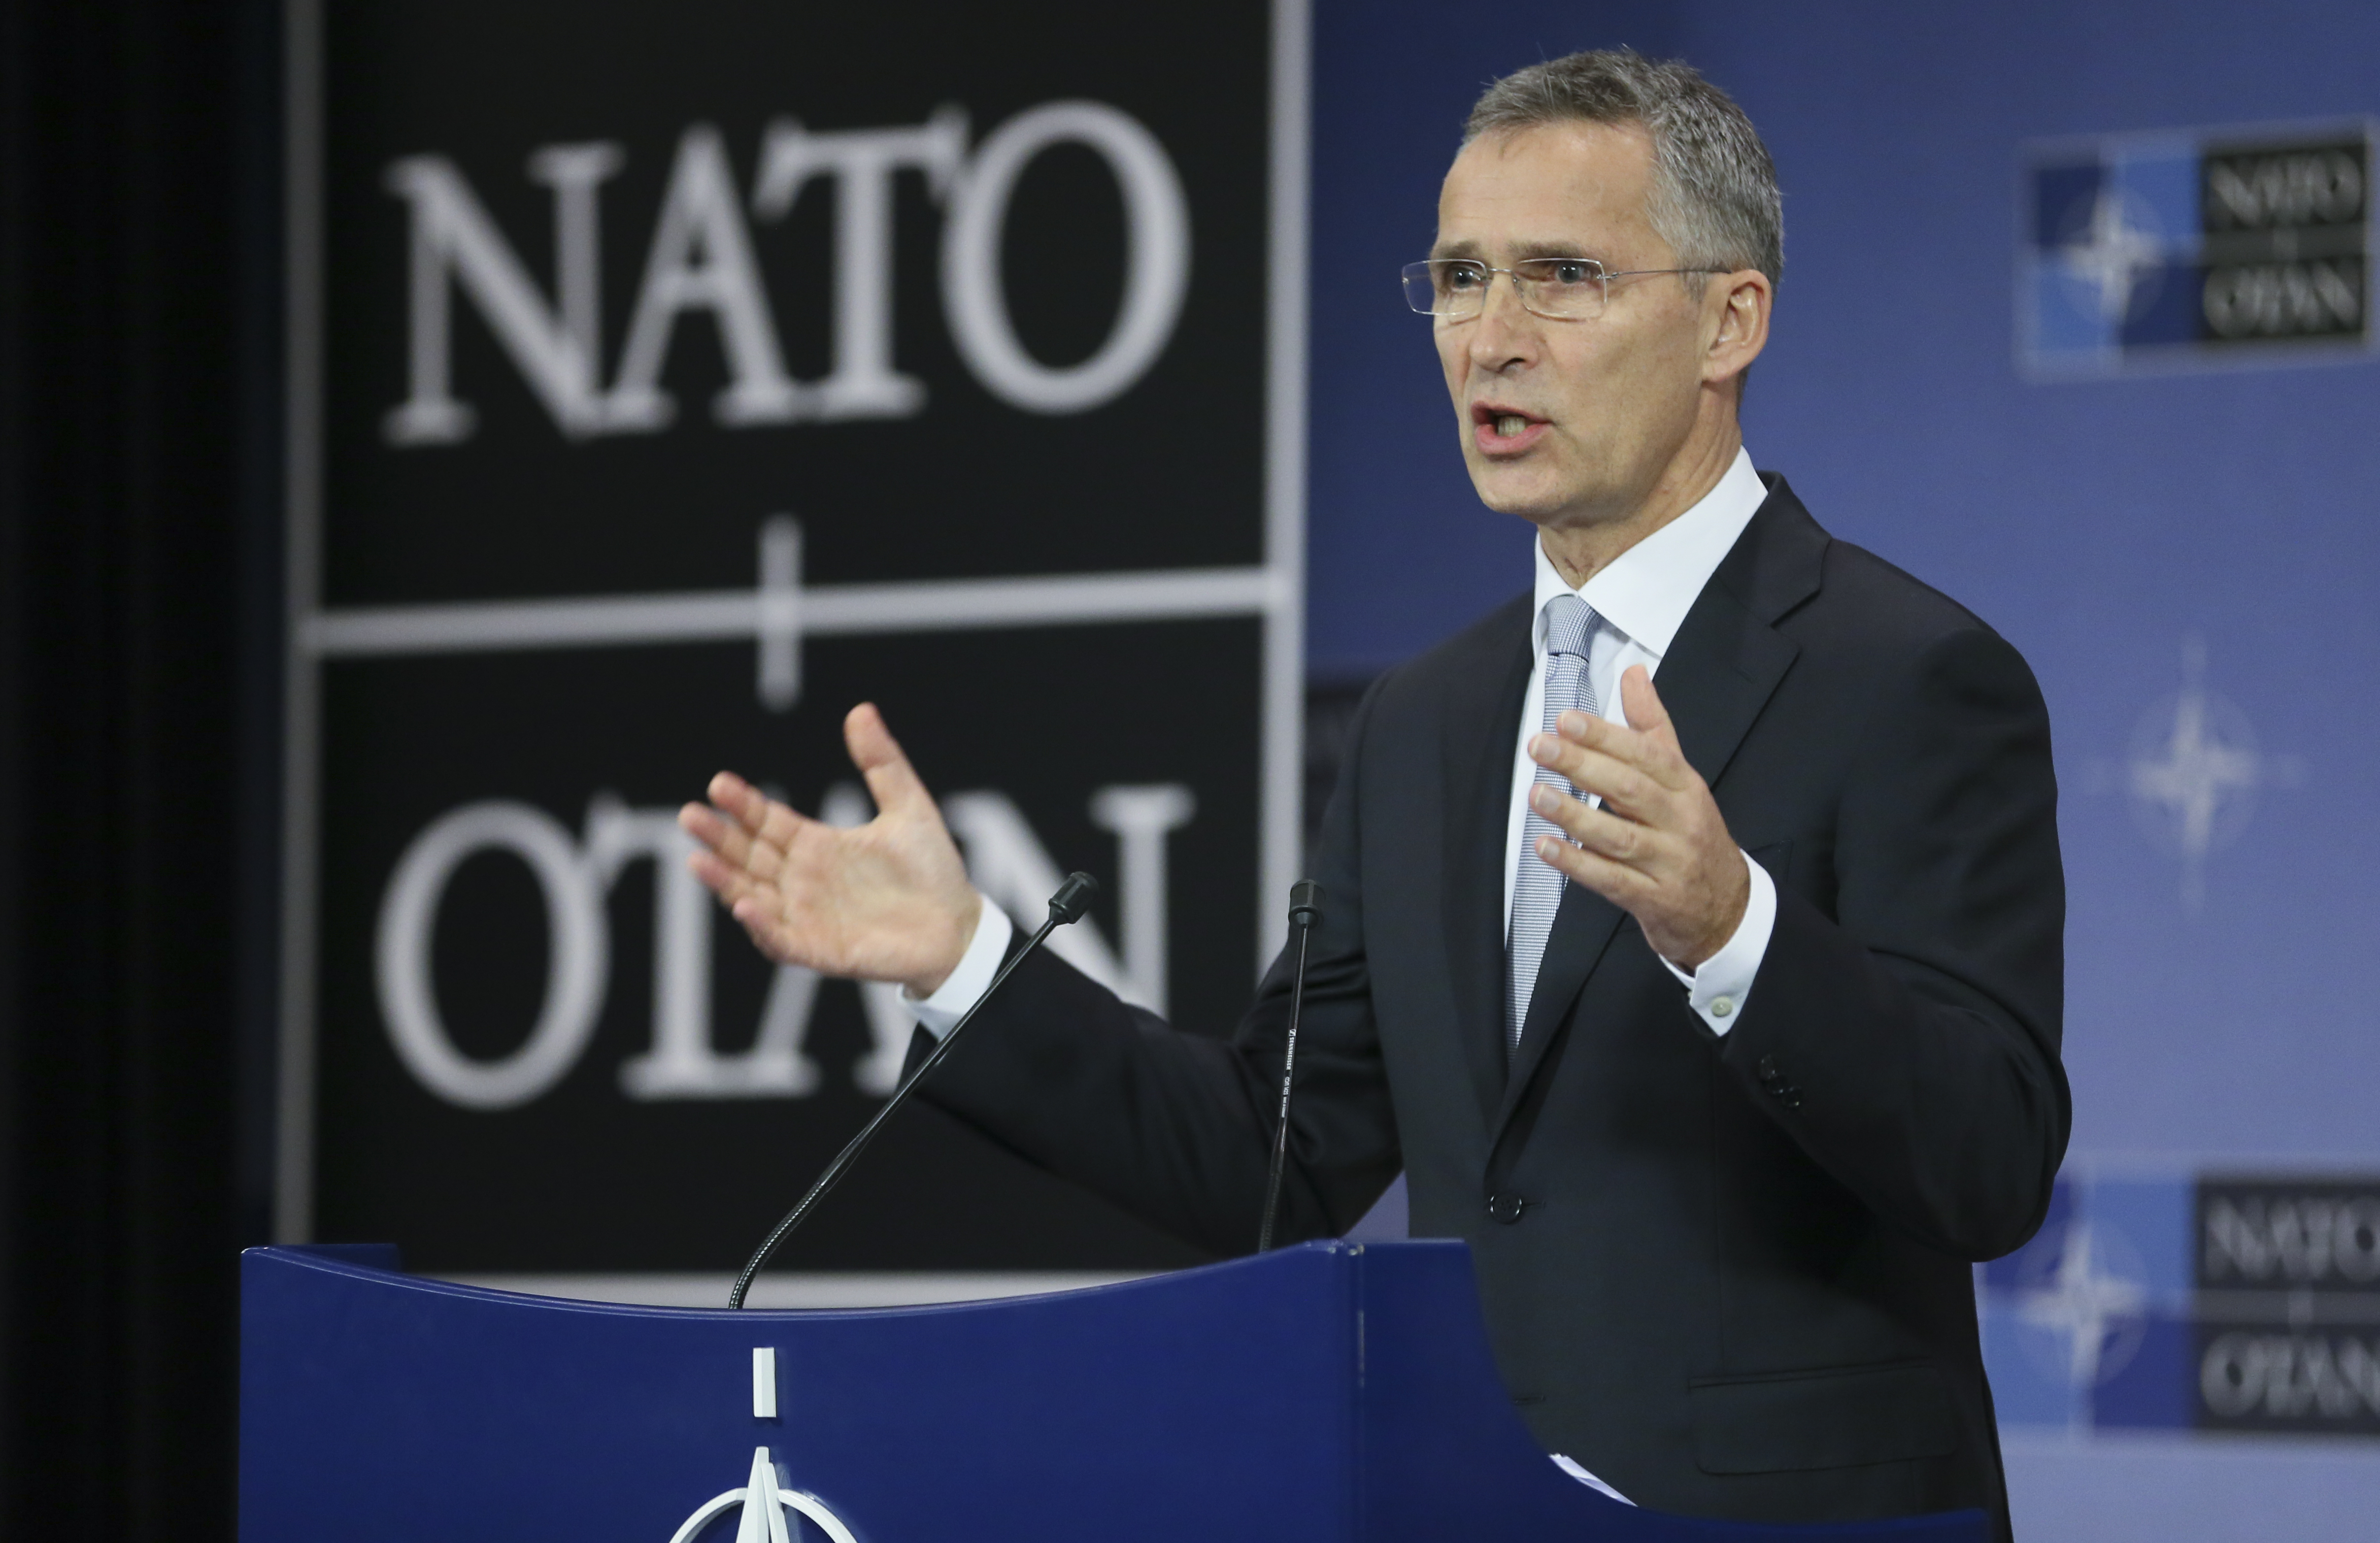 North Atlantic Treaty Organization (NATO) Secretary General Jens Stoltenberg gives a press conference ahead of the Defense Ministers Council at Alliance headquarters in Brussels, Belgium, 25 Oct.2016.